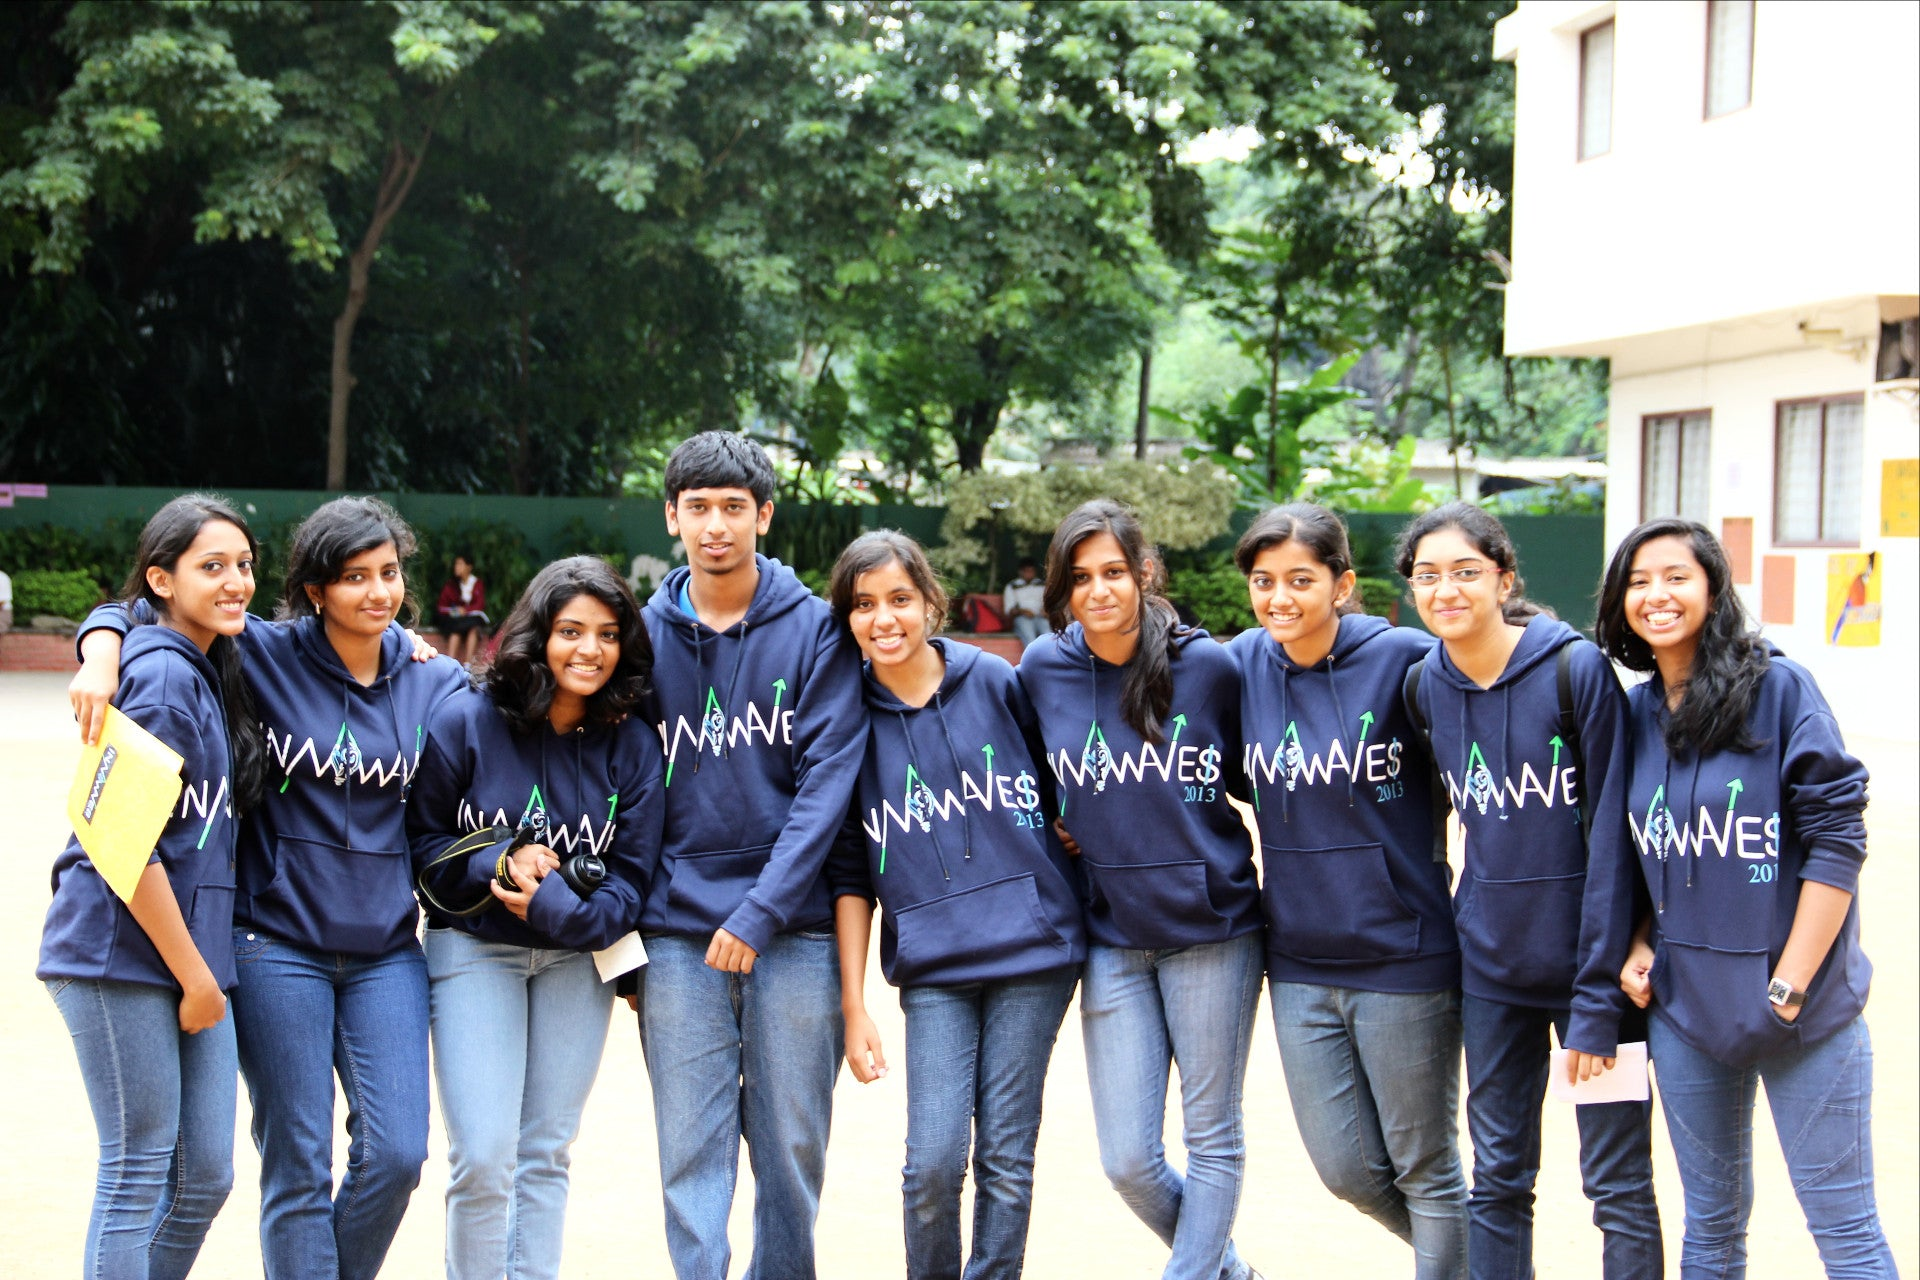 Design your own t shirt bangalore - With